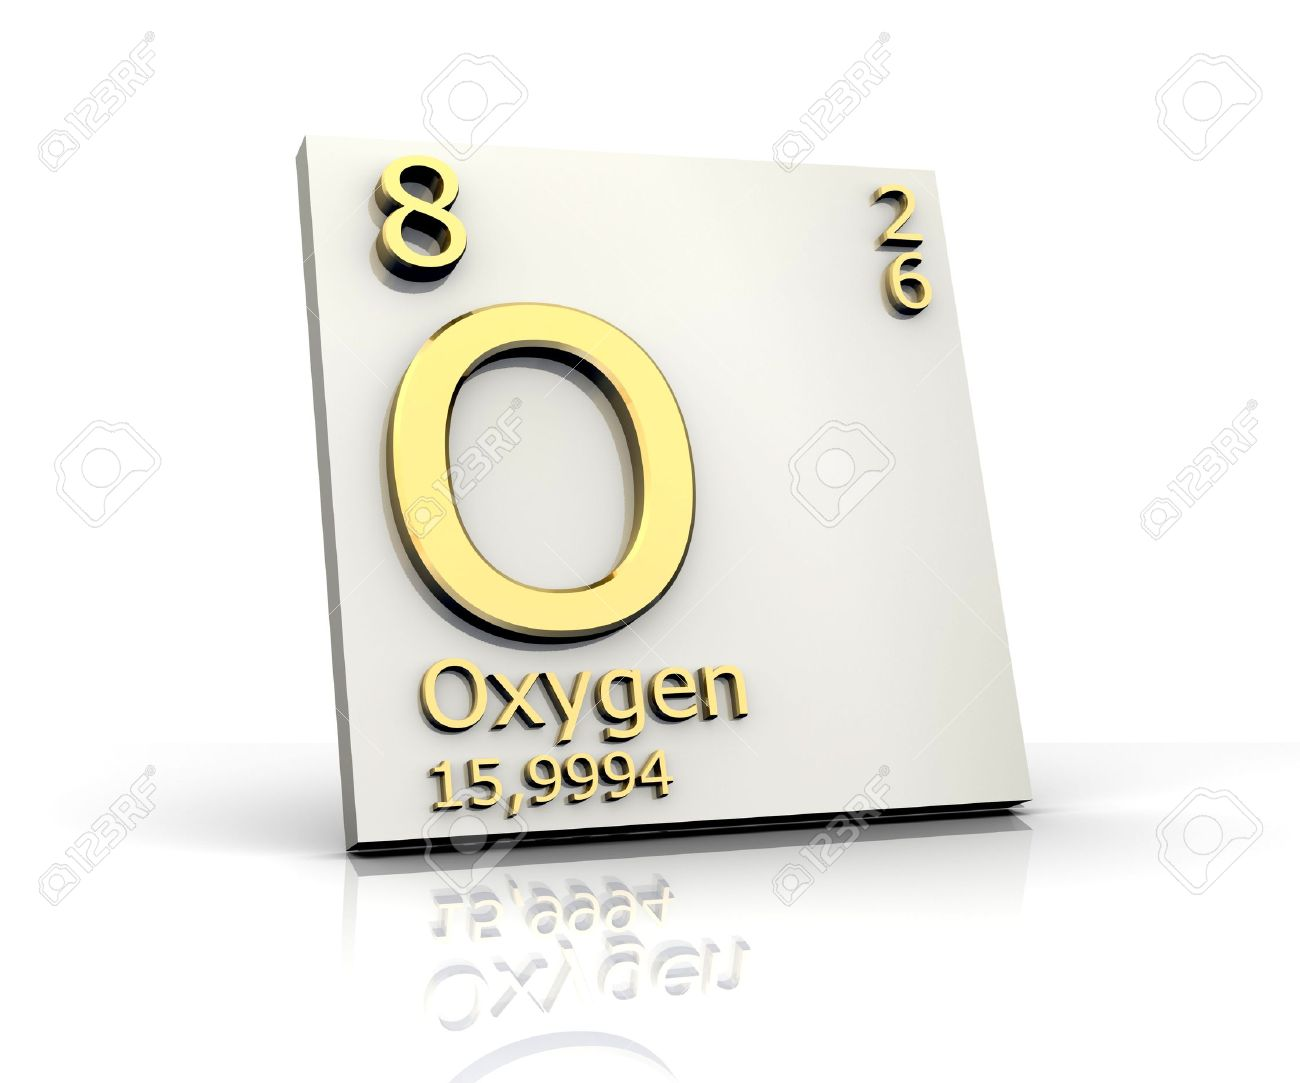 Oxygen facts periodic table images periodic table images oxygen facts periodic table image collections periodic table images oxygen facts periodic table gallery periodic table gamestrikefo Images